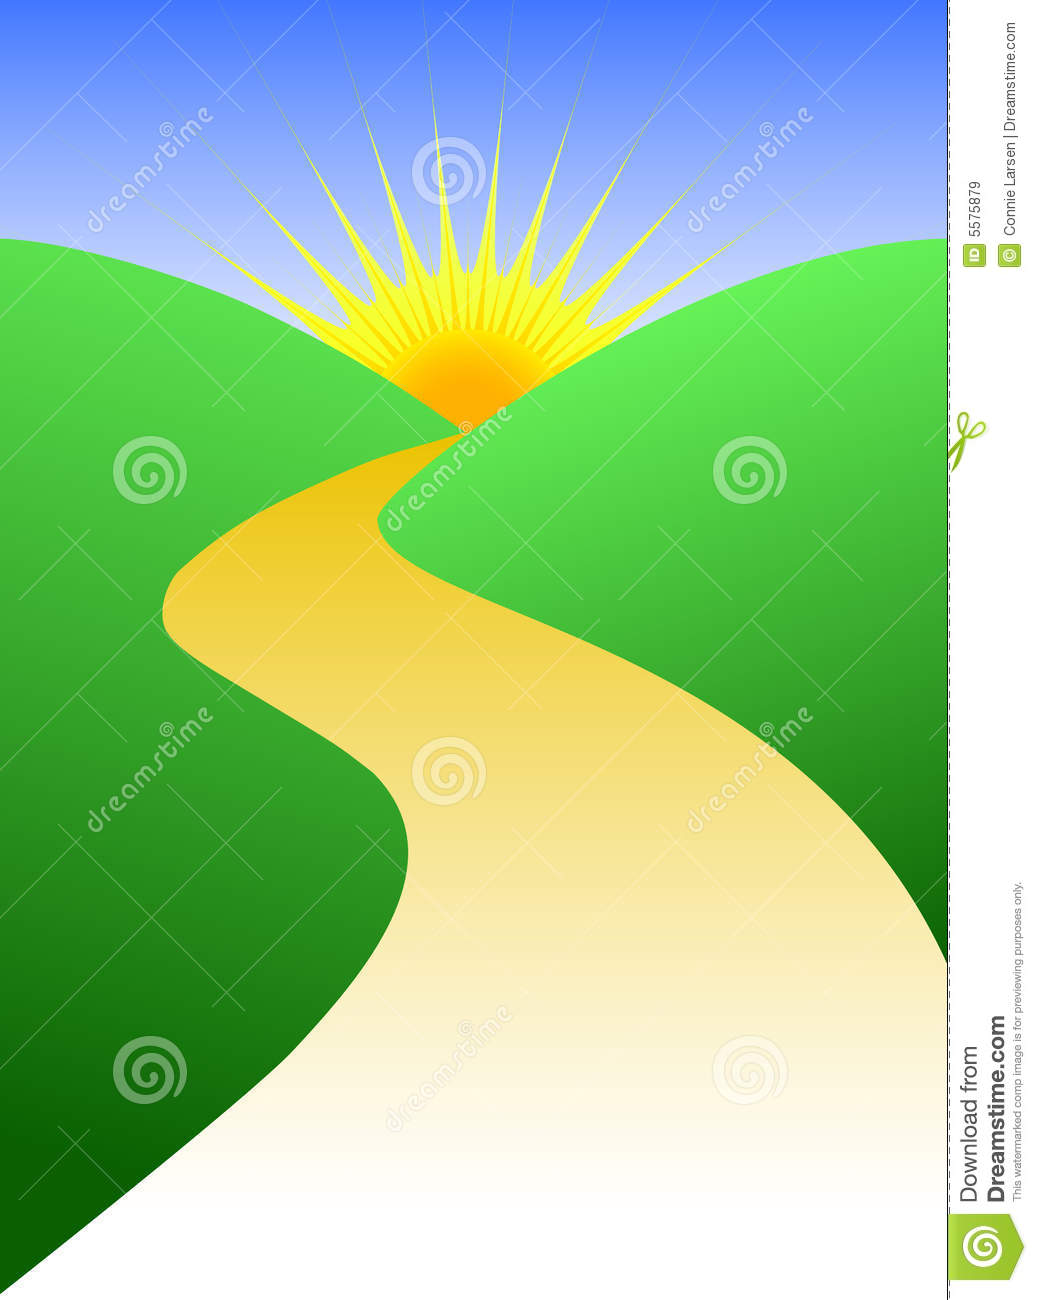 Pathway clipart winding path Path Success Collection mountain Path